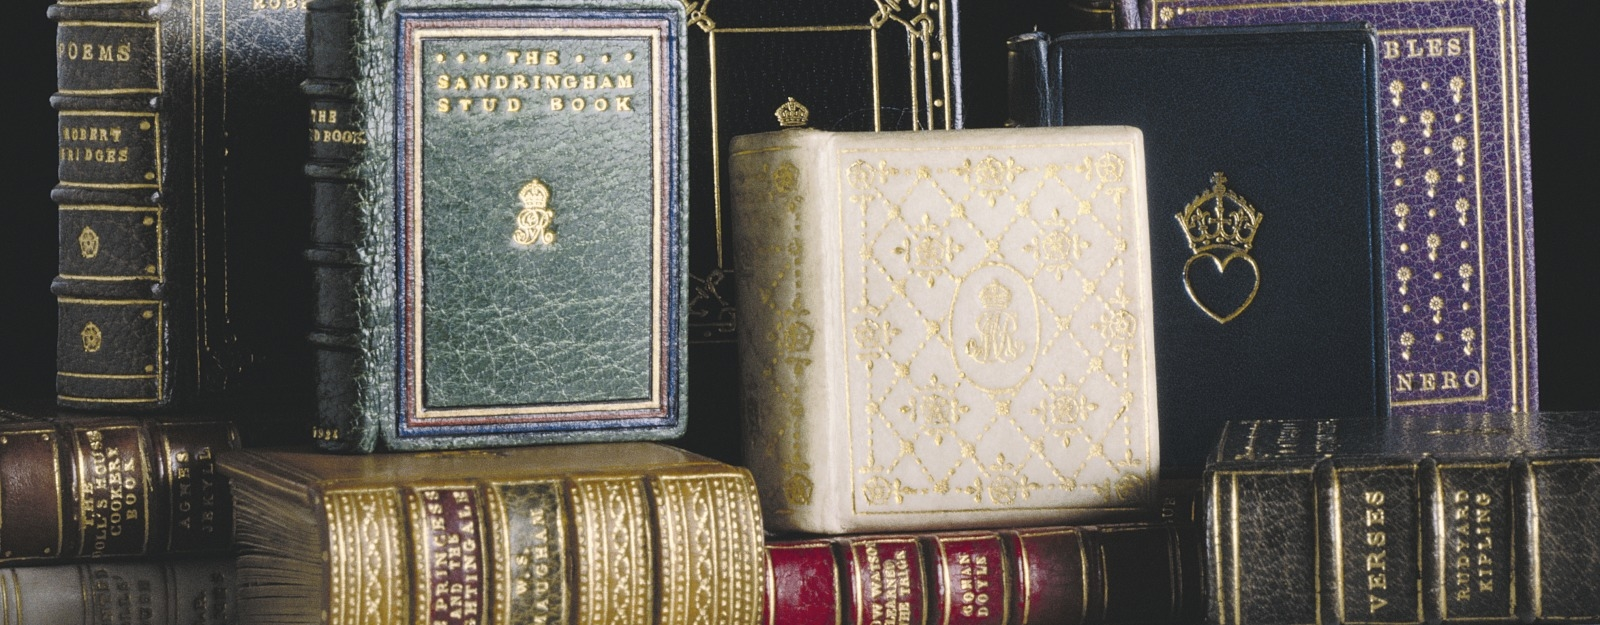 Miniature books from the library of Queen Mary's Dolls' House, Windsor Castle